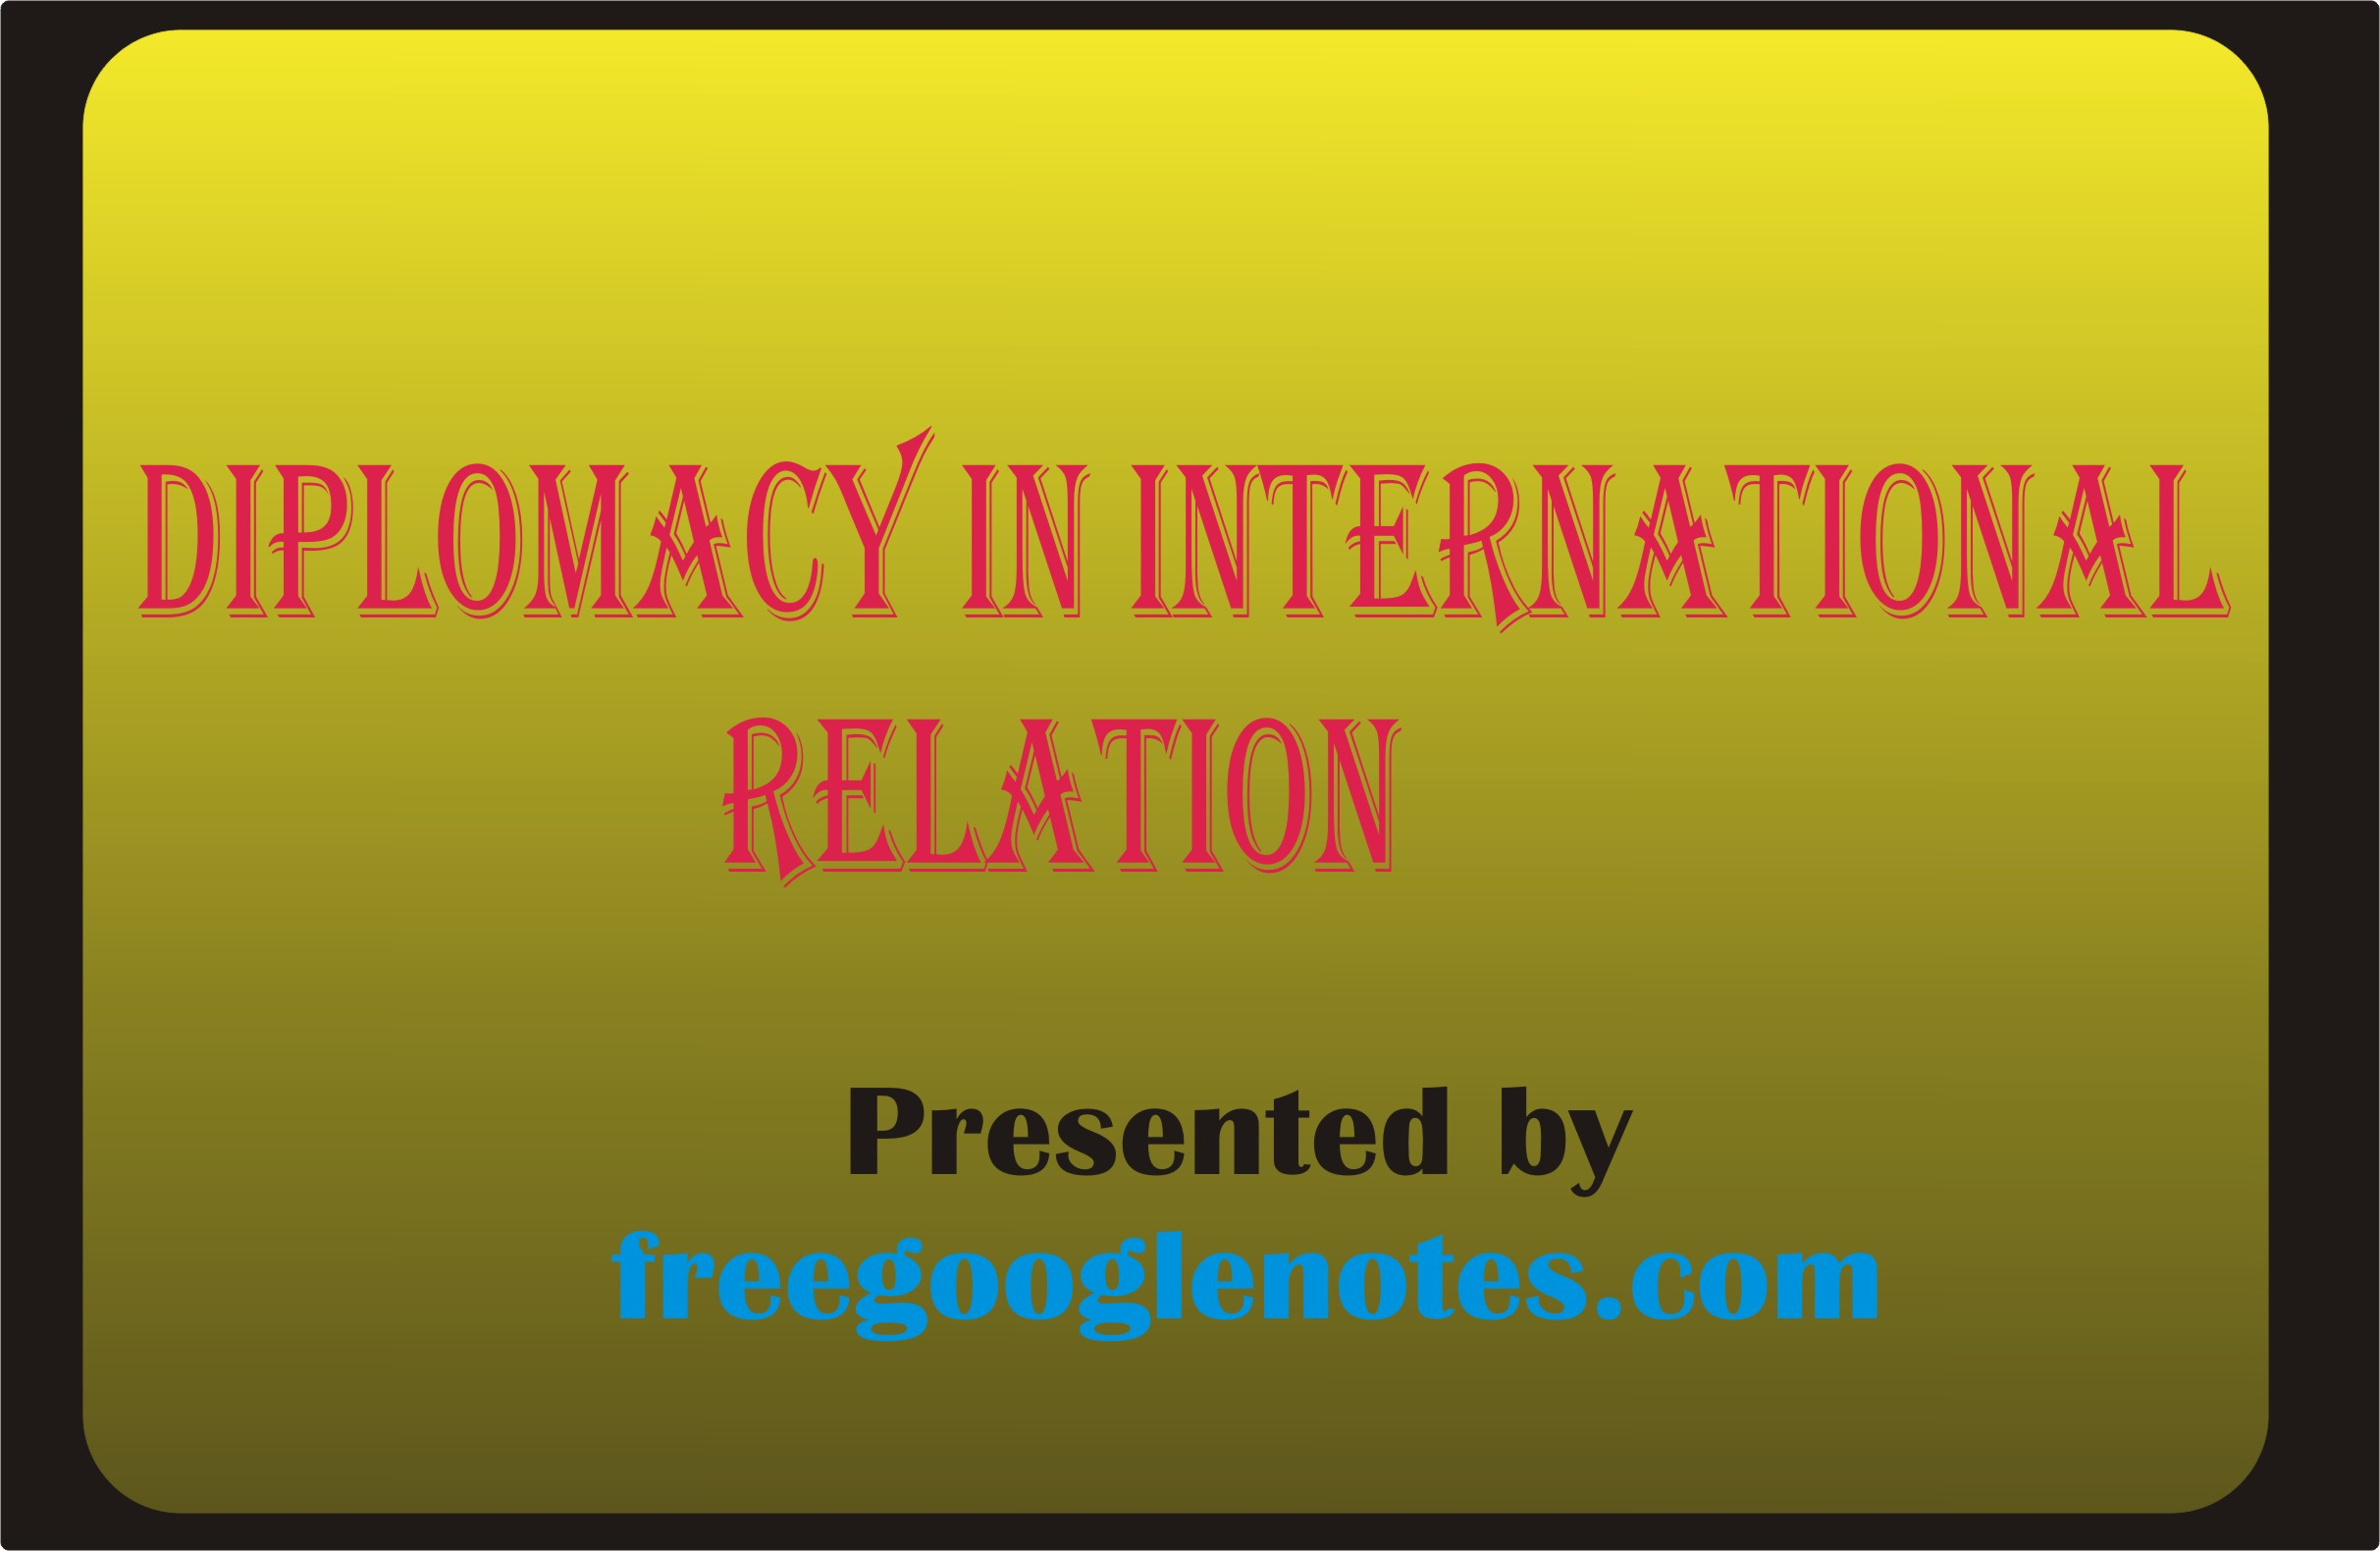 Diplomacy in International Relation